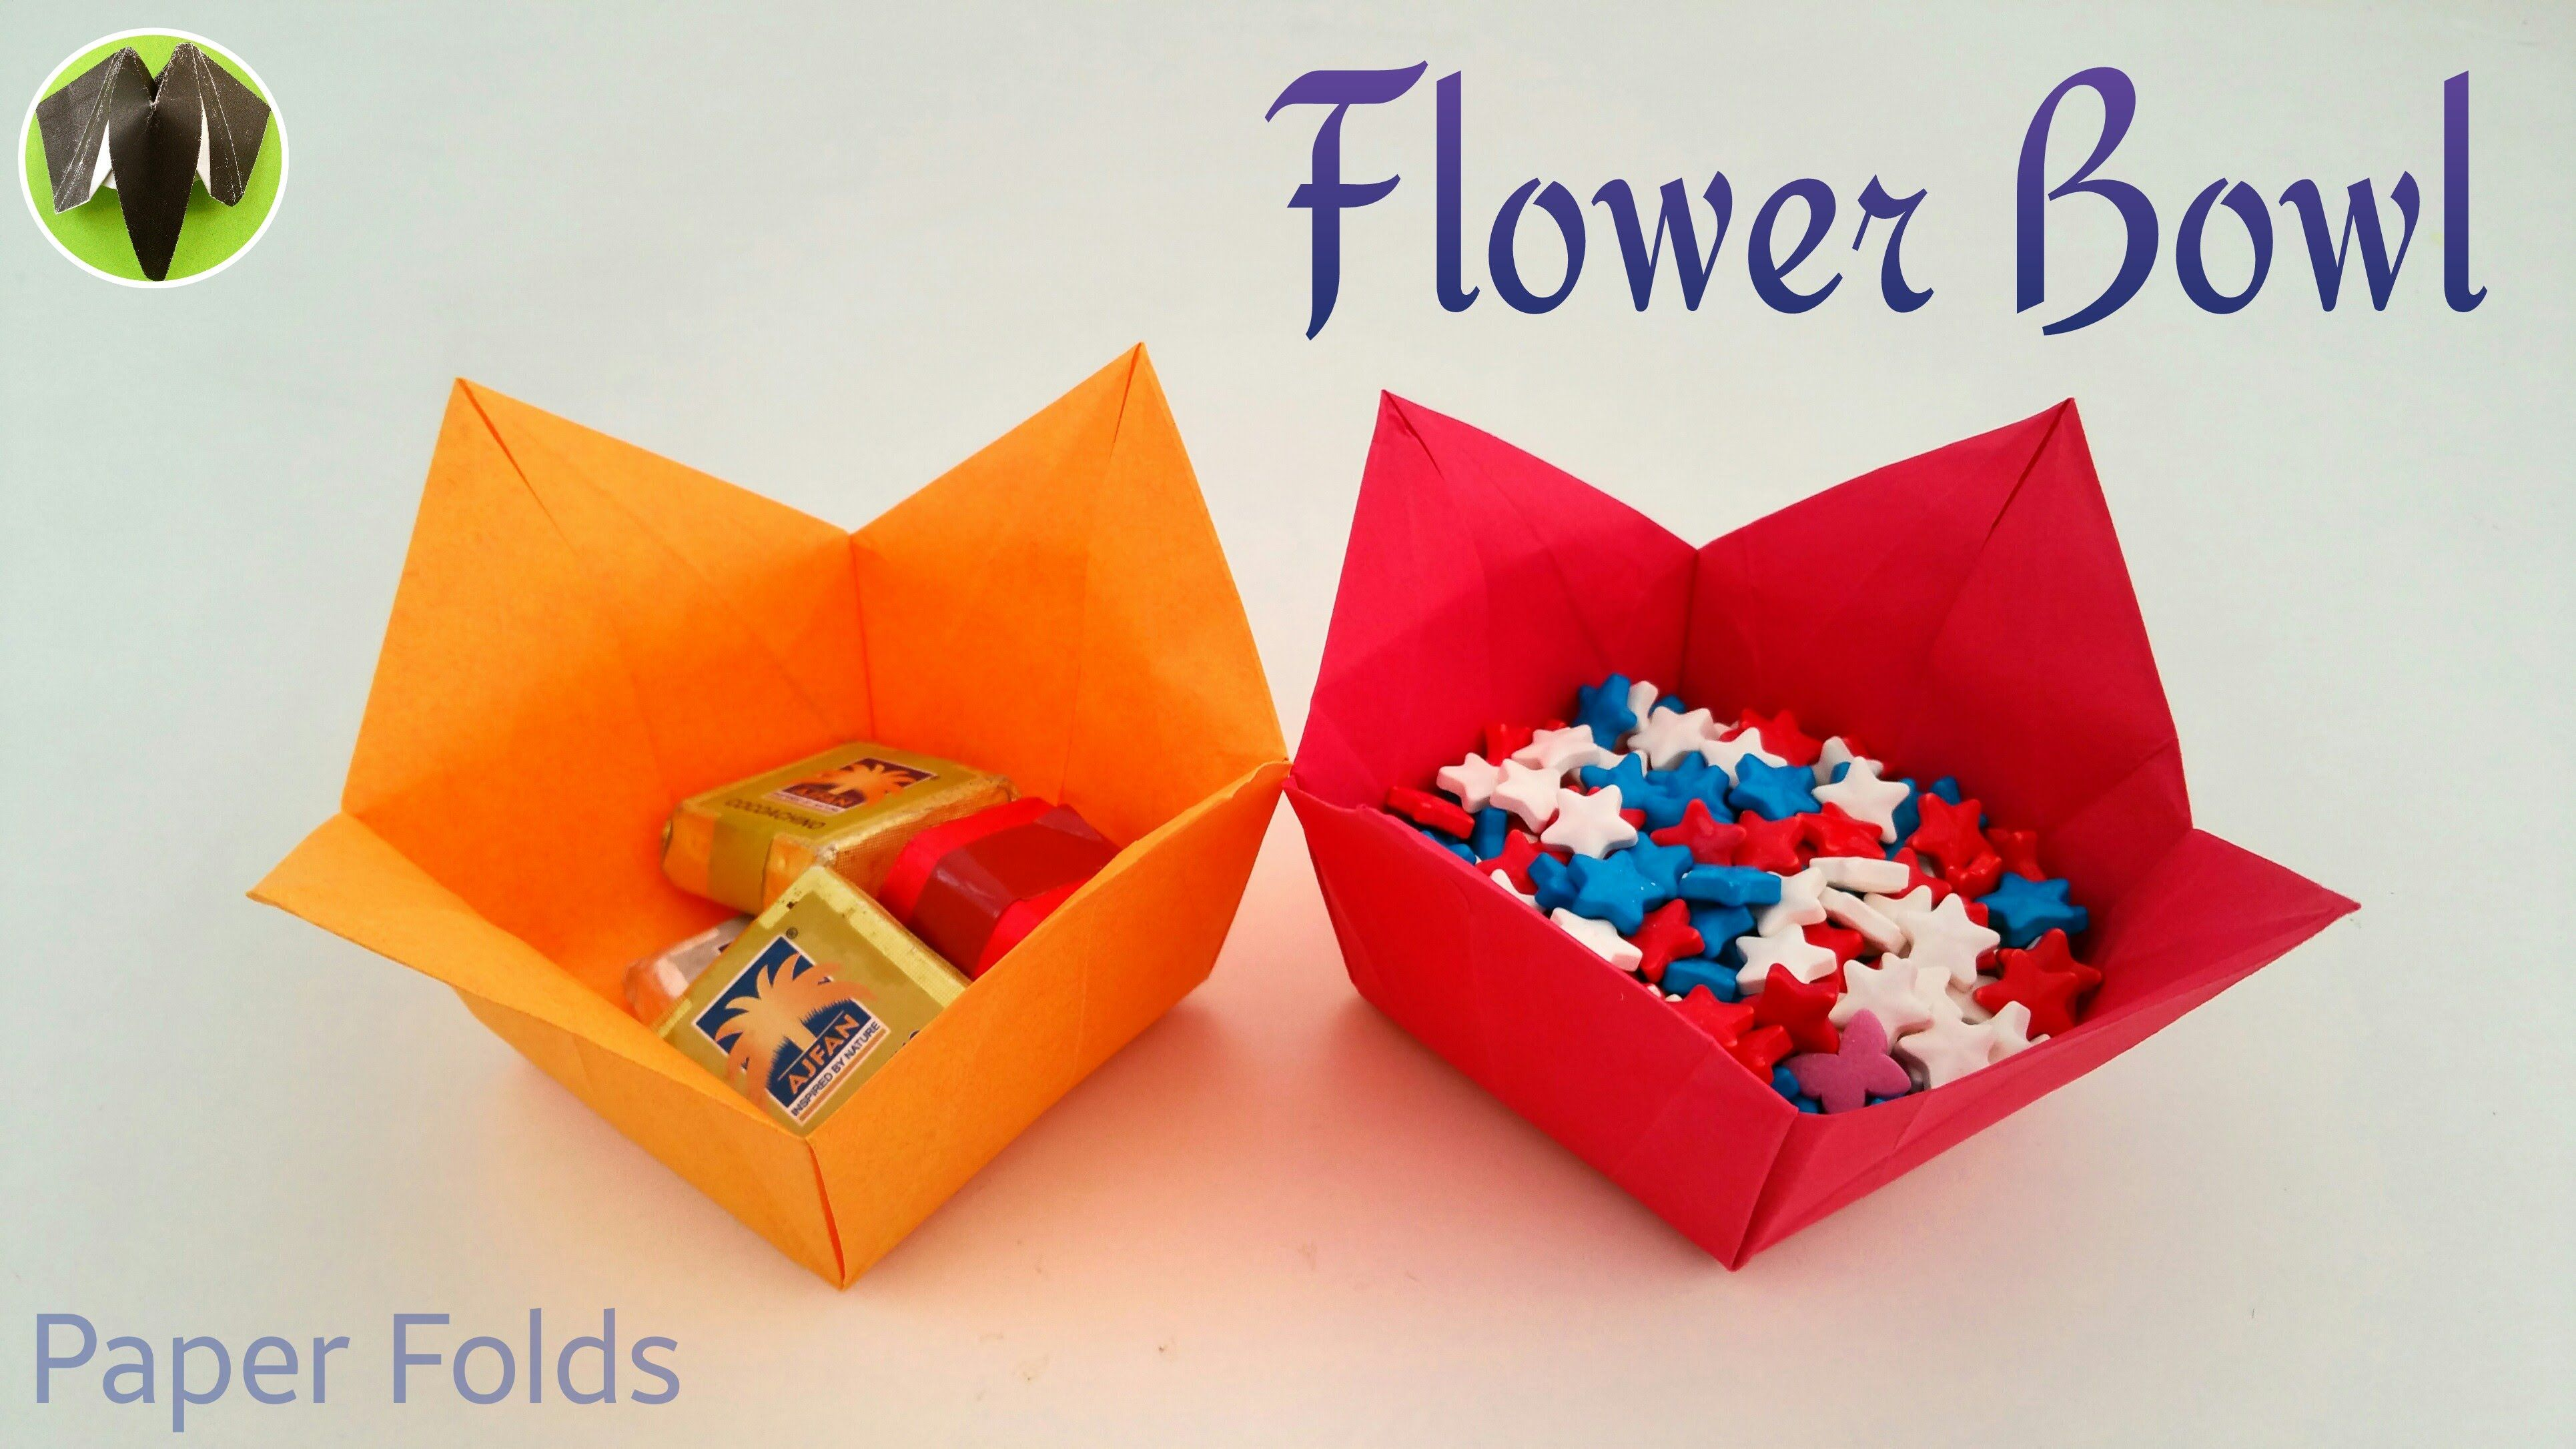 How To Make A Paper Flower Bowl Useful Origami Tutorial